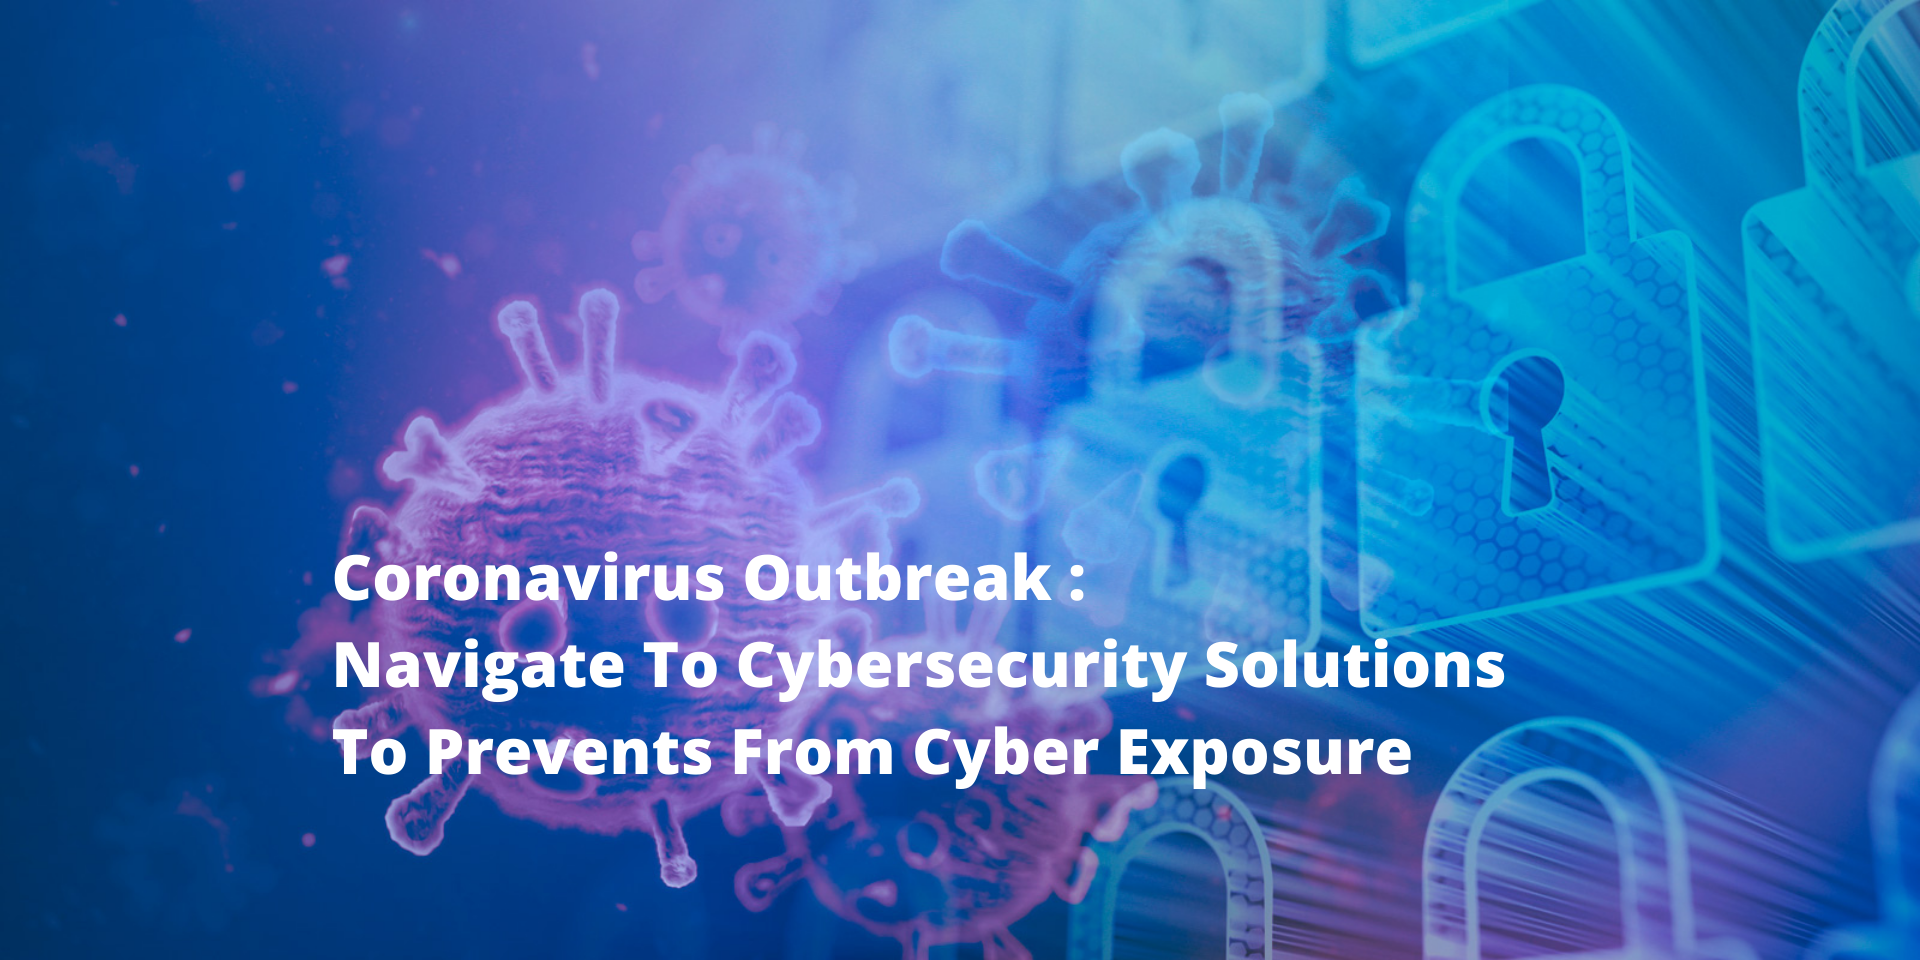 Cyber-Solutions during Global Pandemic